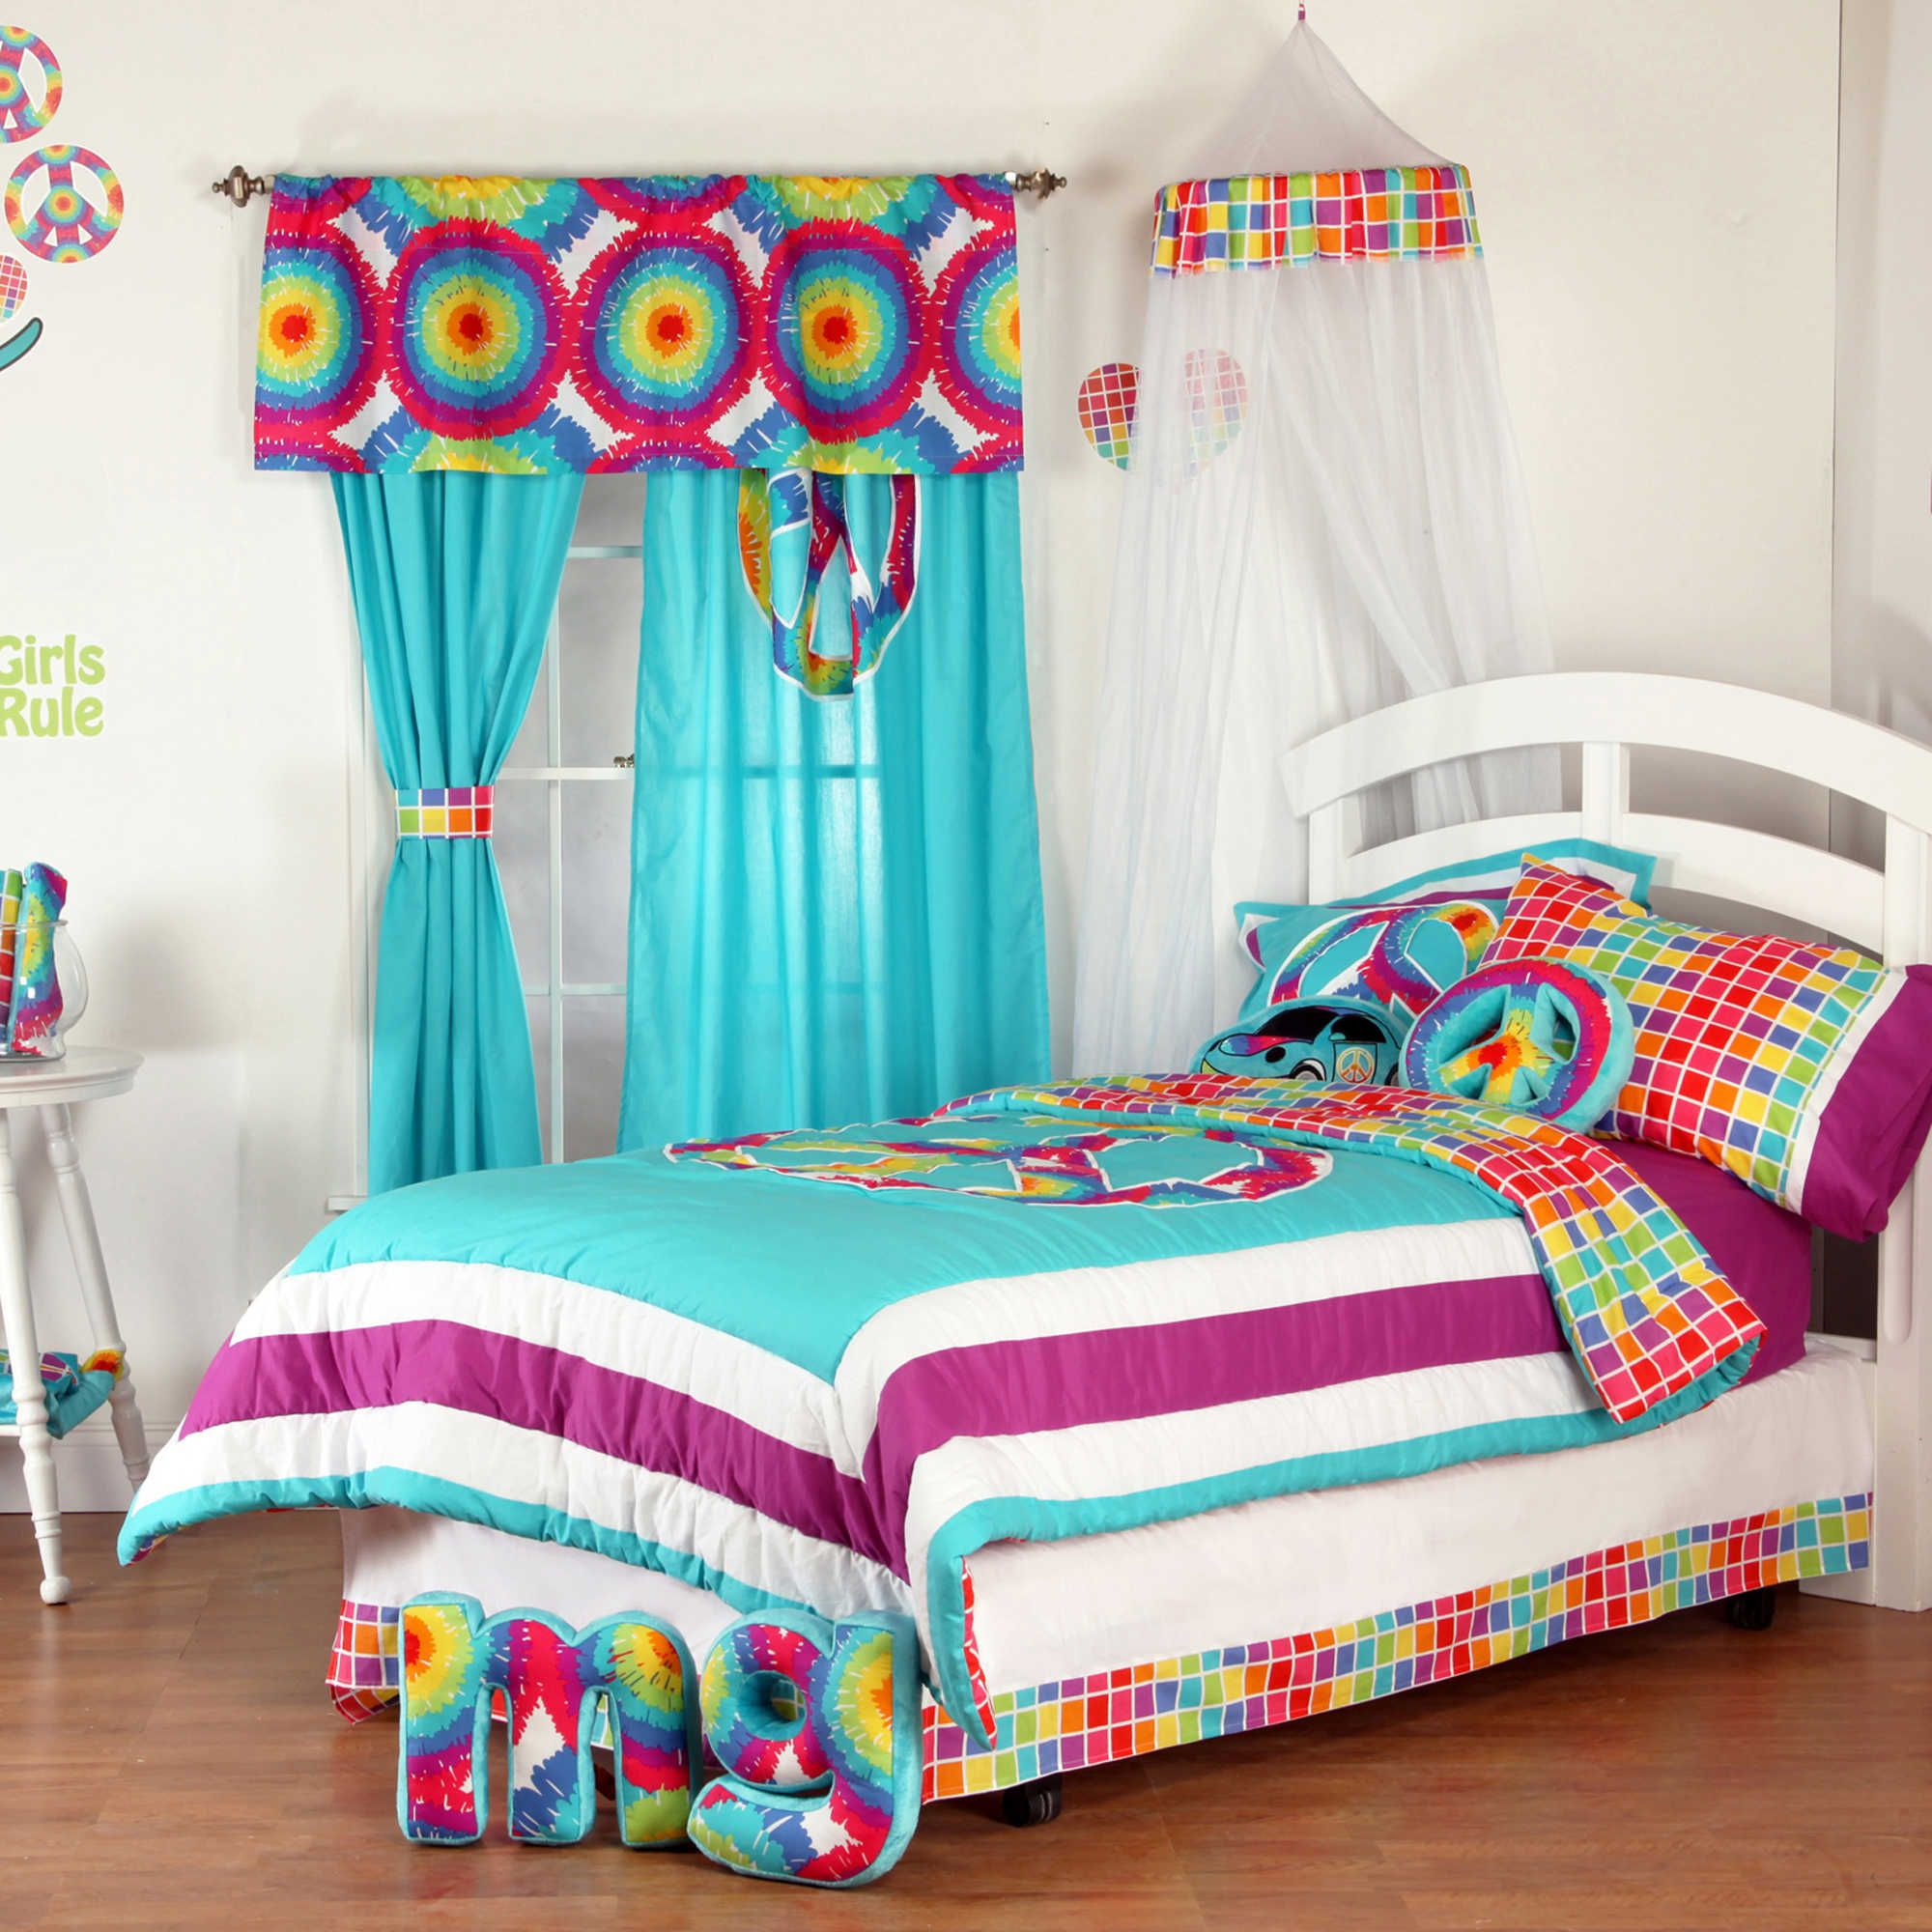 tie dye bed sheets with side table and pretty curtains for